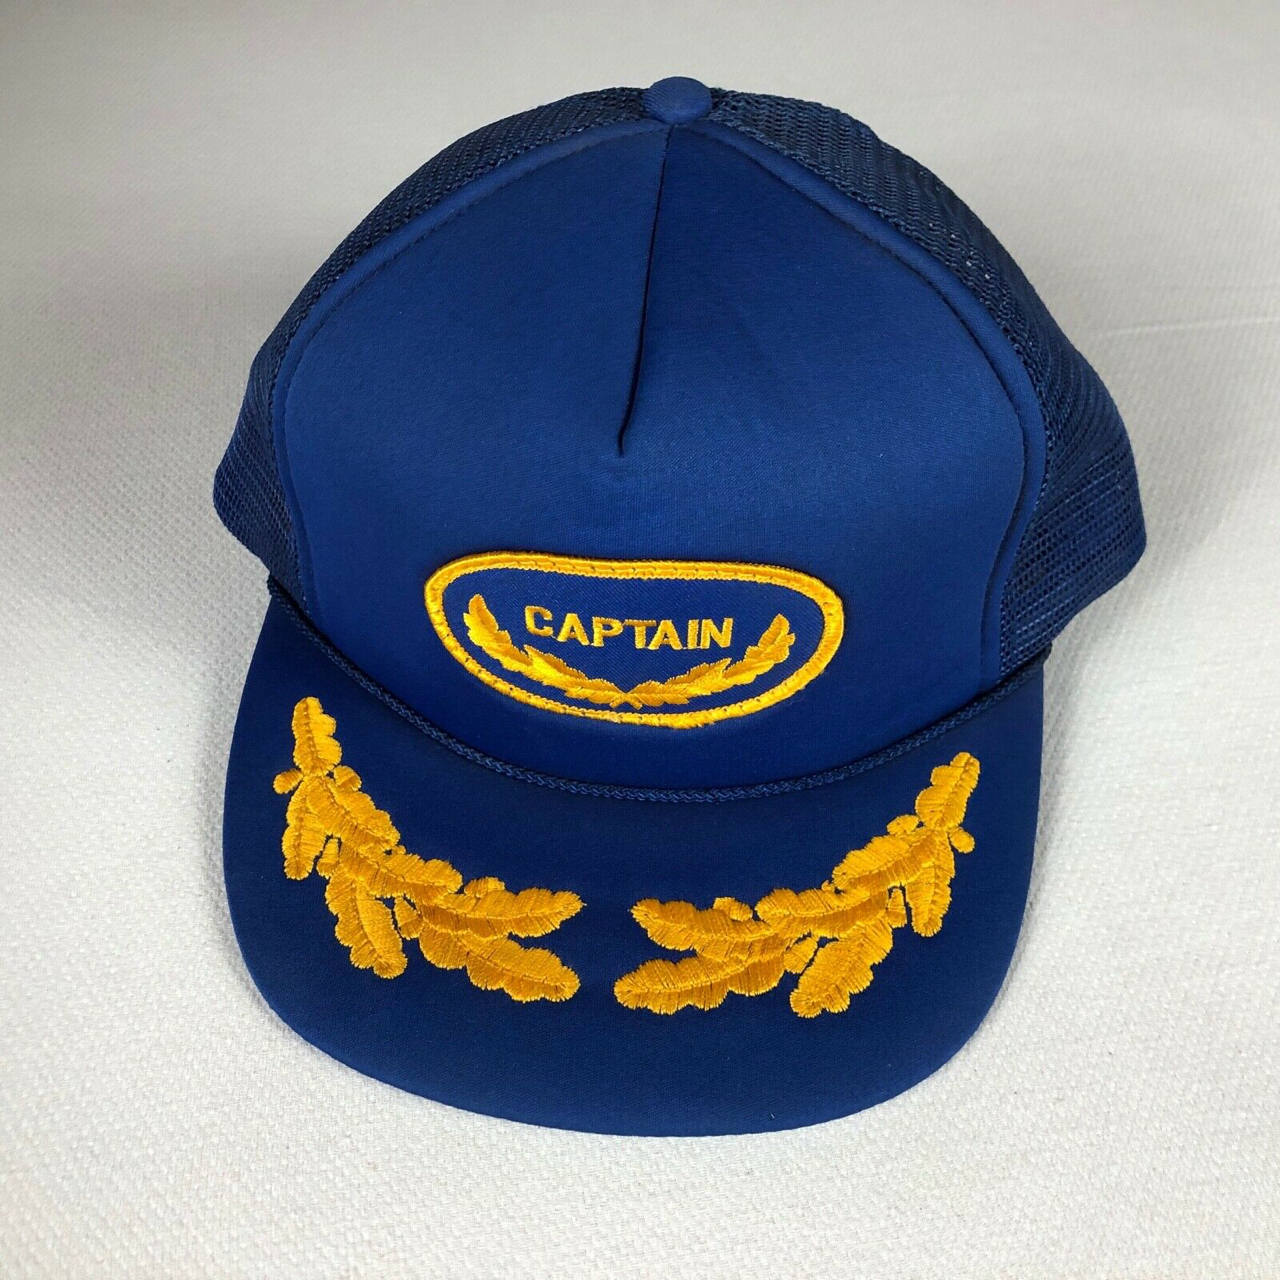 Product Image 1 - Captain Snapback Hat Vintage Rope